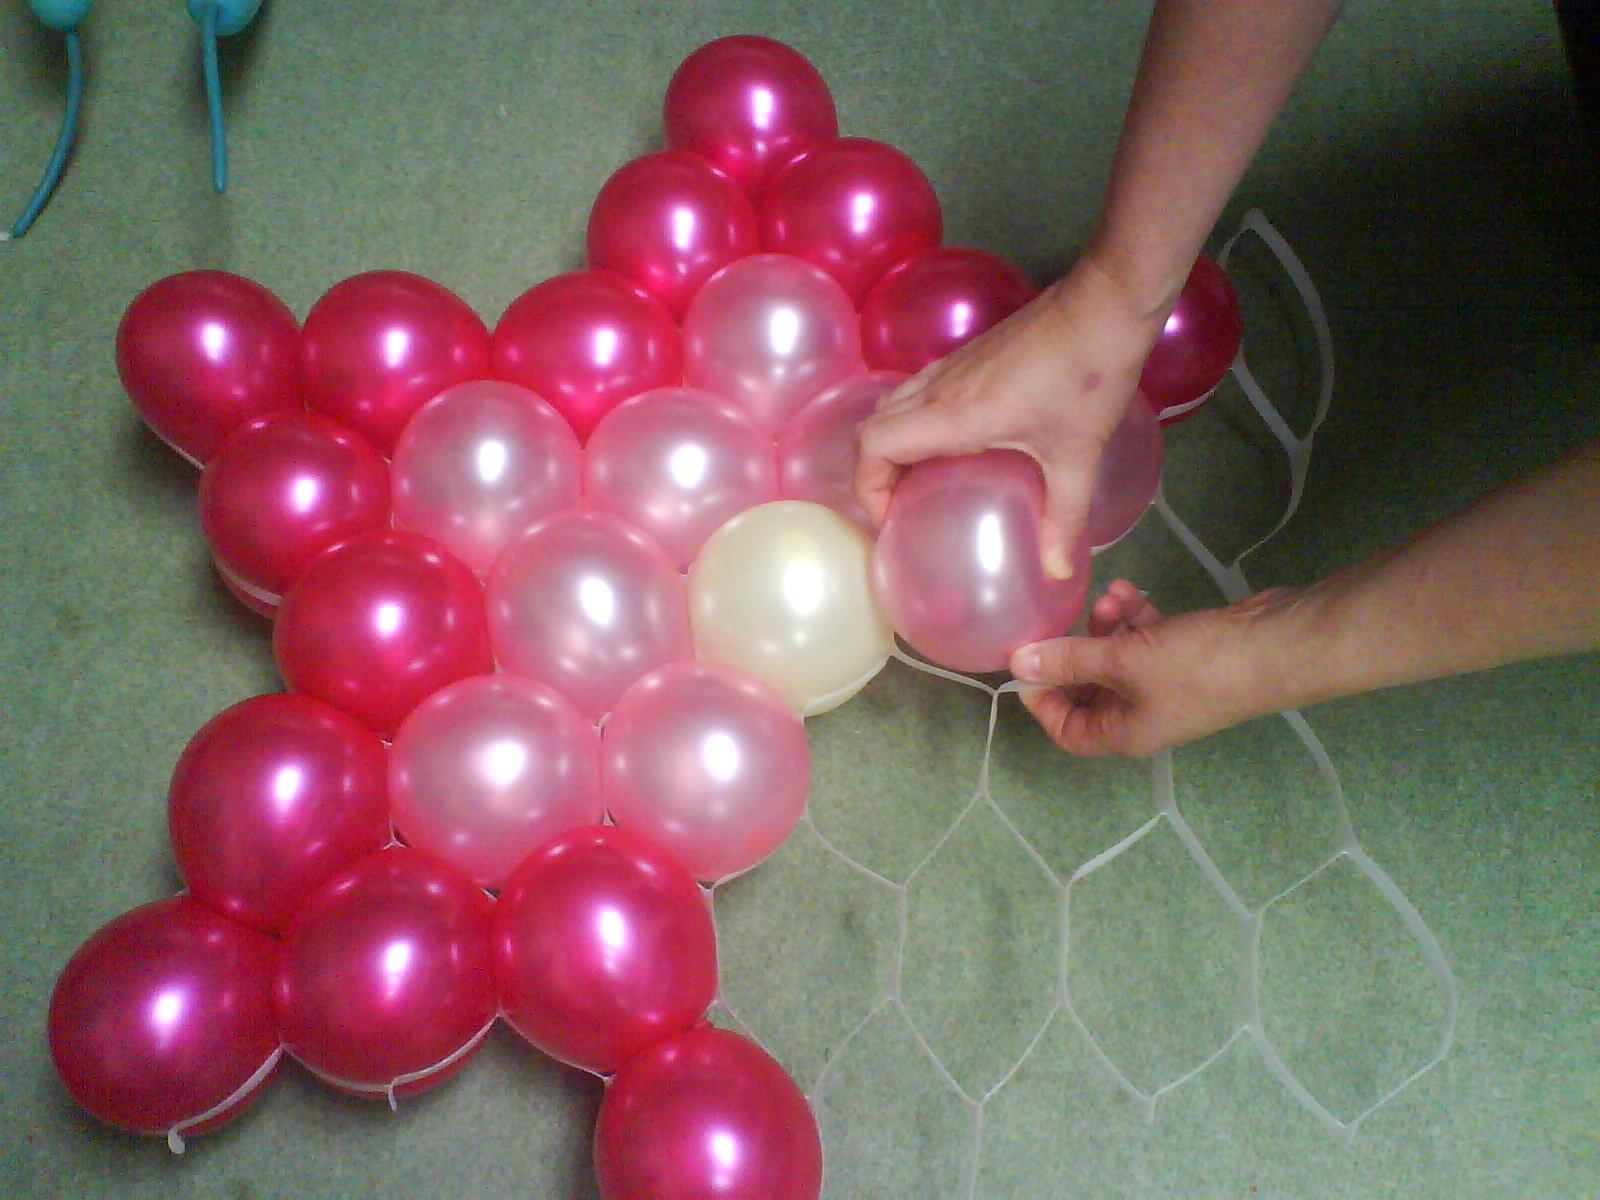 Balloon Decoration Equipment